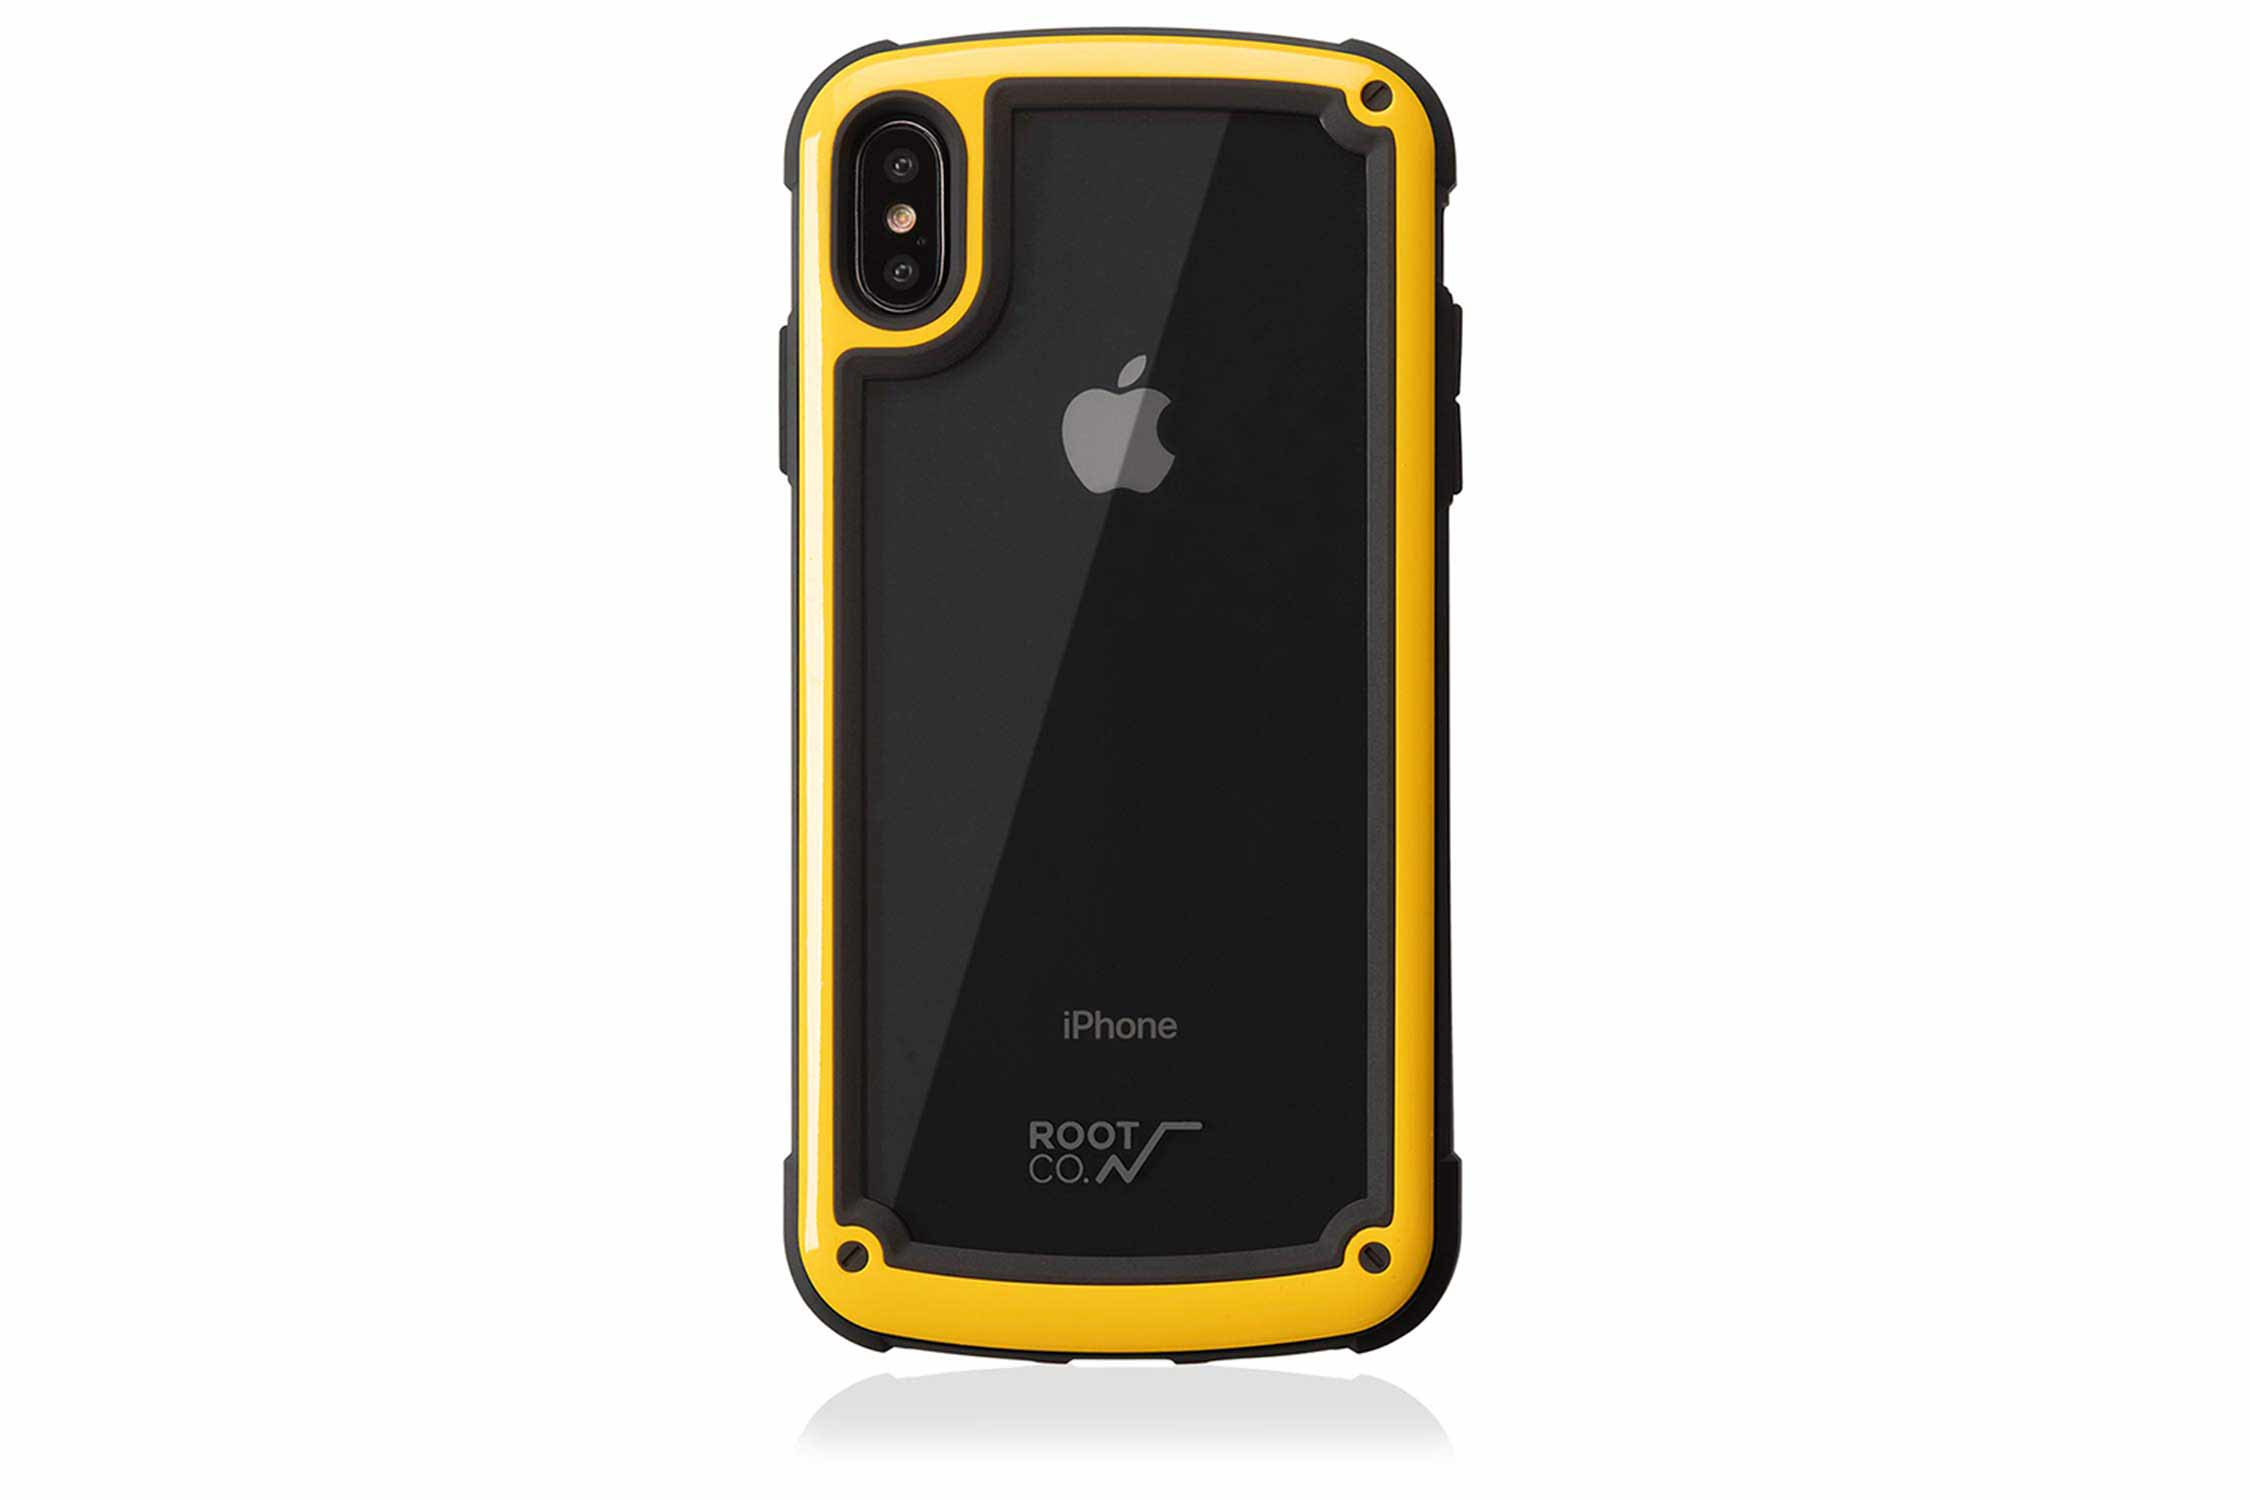 【ROOT CO.】iPhoneXS Max ケース 耐衝撃 Gravity Shock Resist Tough & Basic Case.